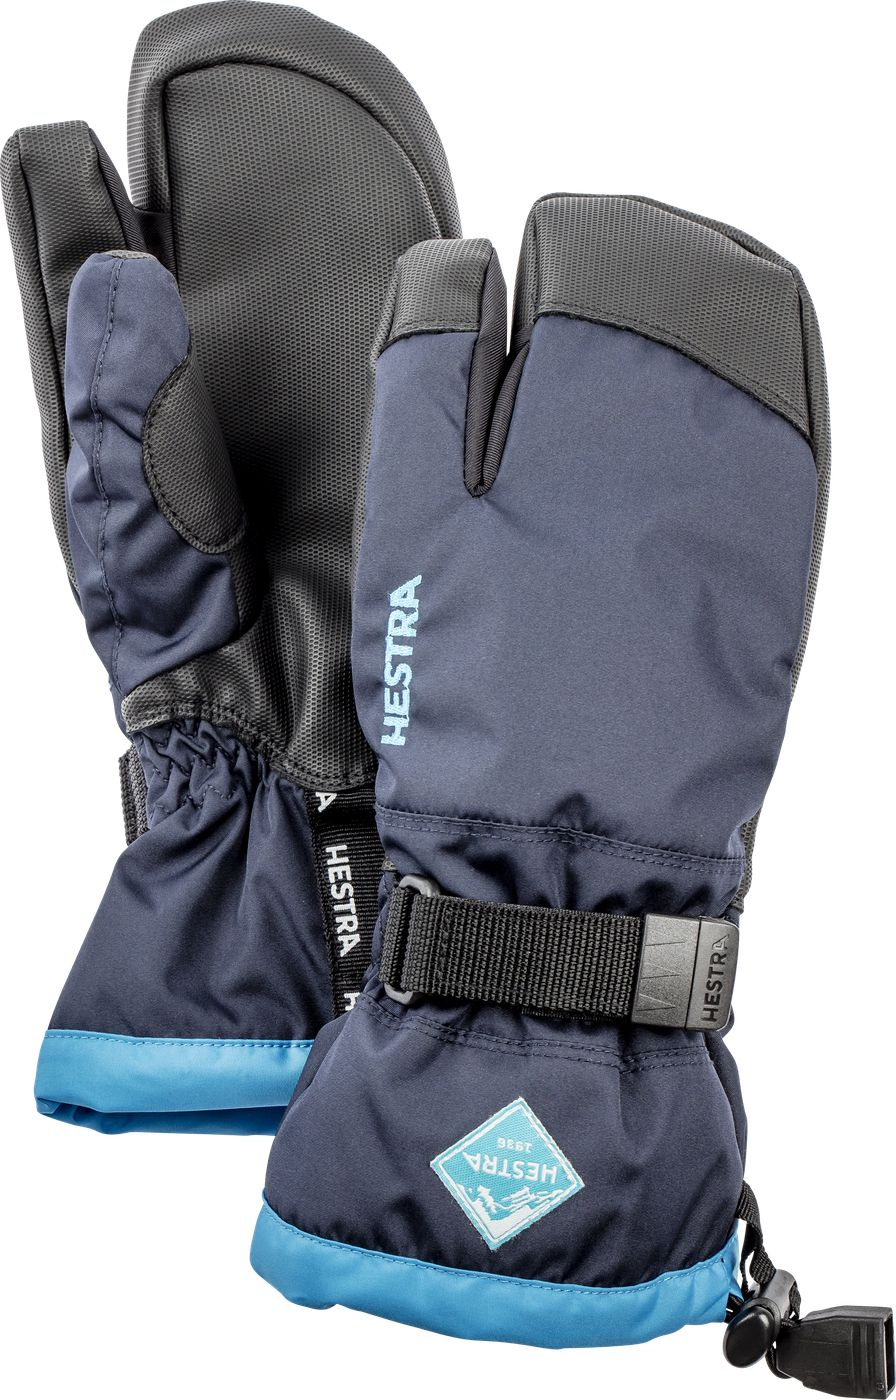 Hestra Gauntlet Czone JR – 3 finger Dark Navy